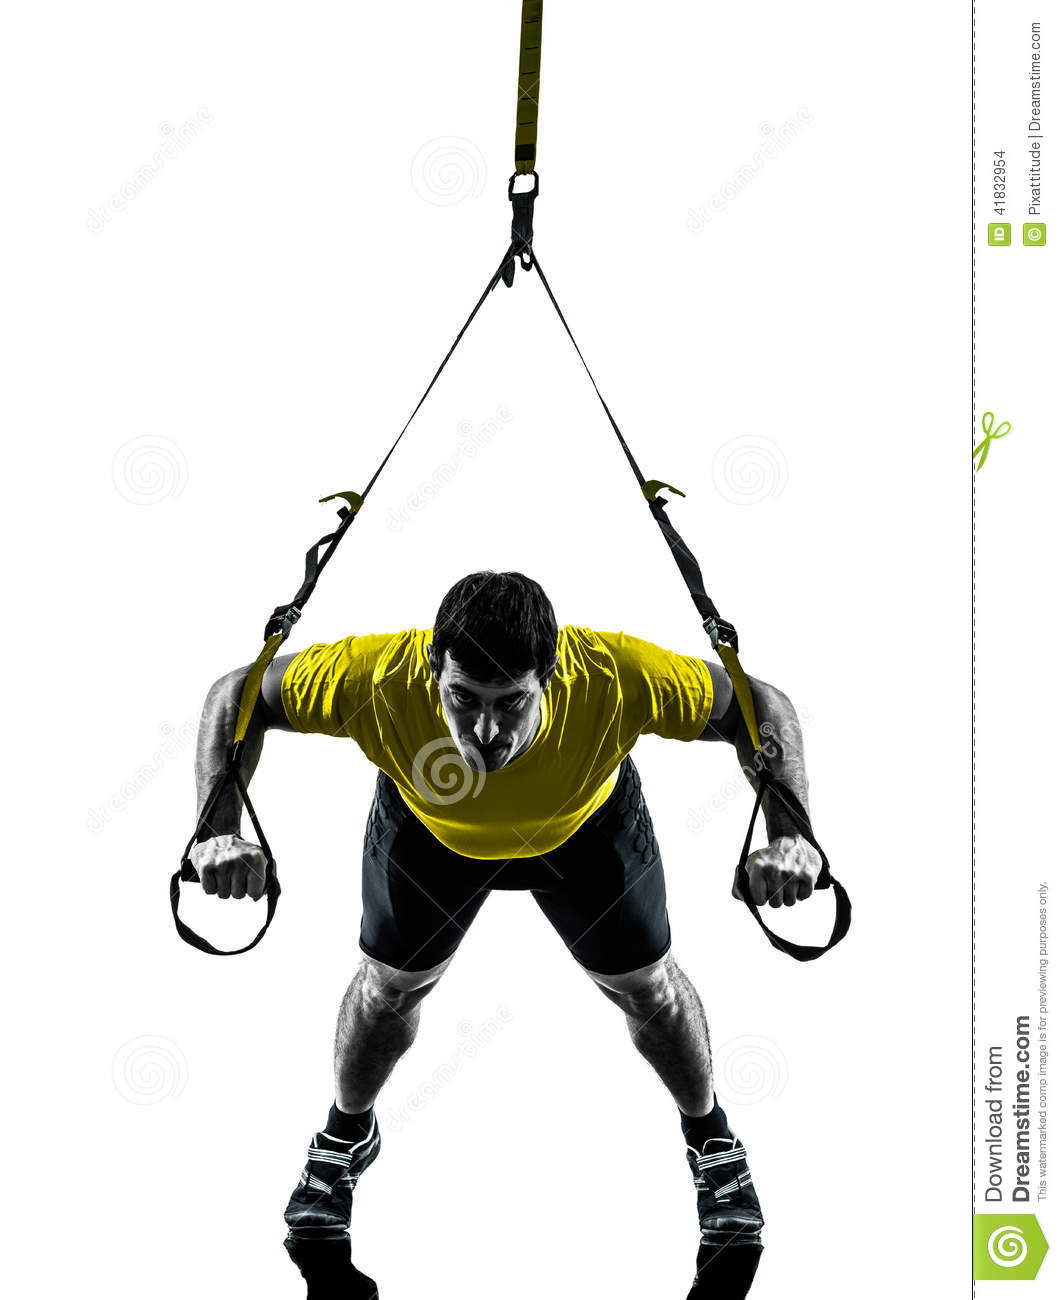 Man Exercising Suspension Training Trx Silhouette Stock Photo - Image ...